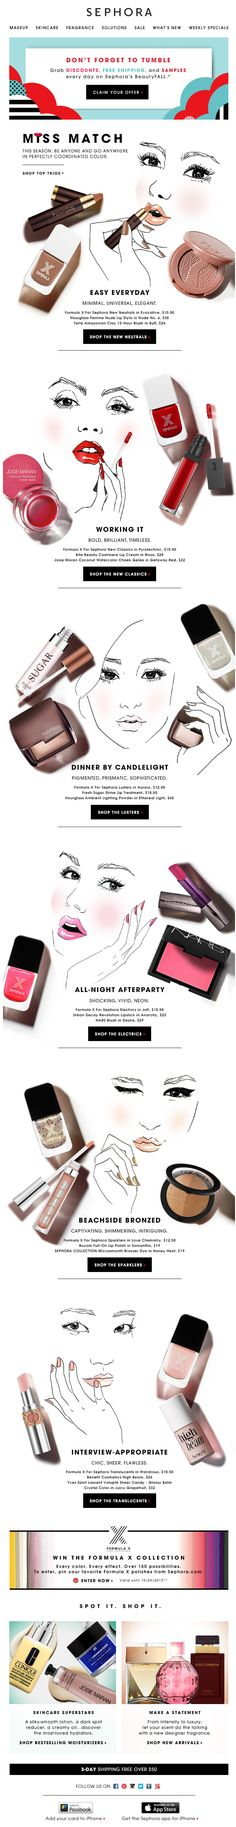 Sephora Beauty 1, 2, 3...liking the face illustrations                                                                                                                                                                                 More